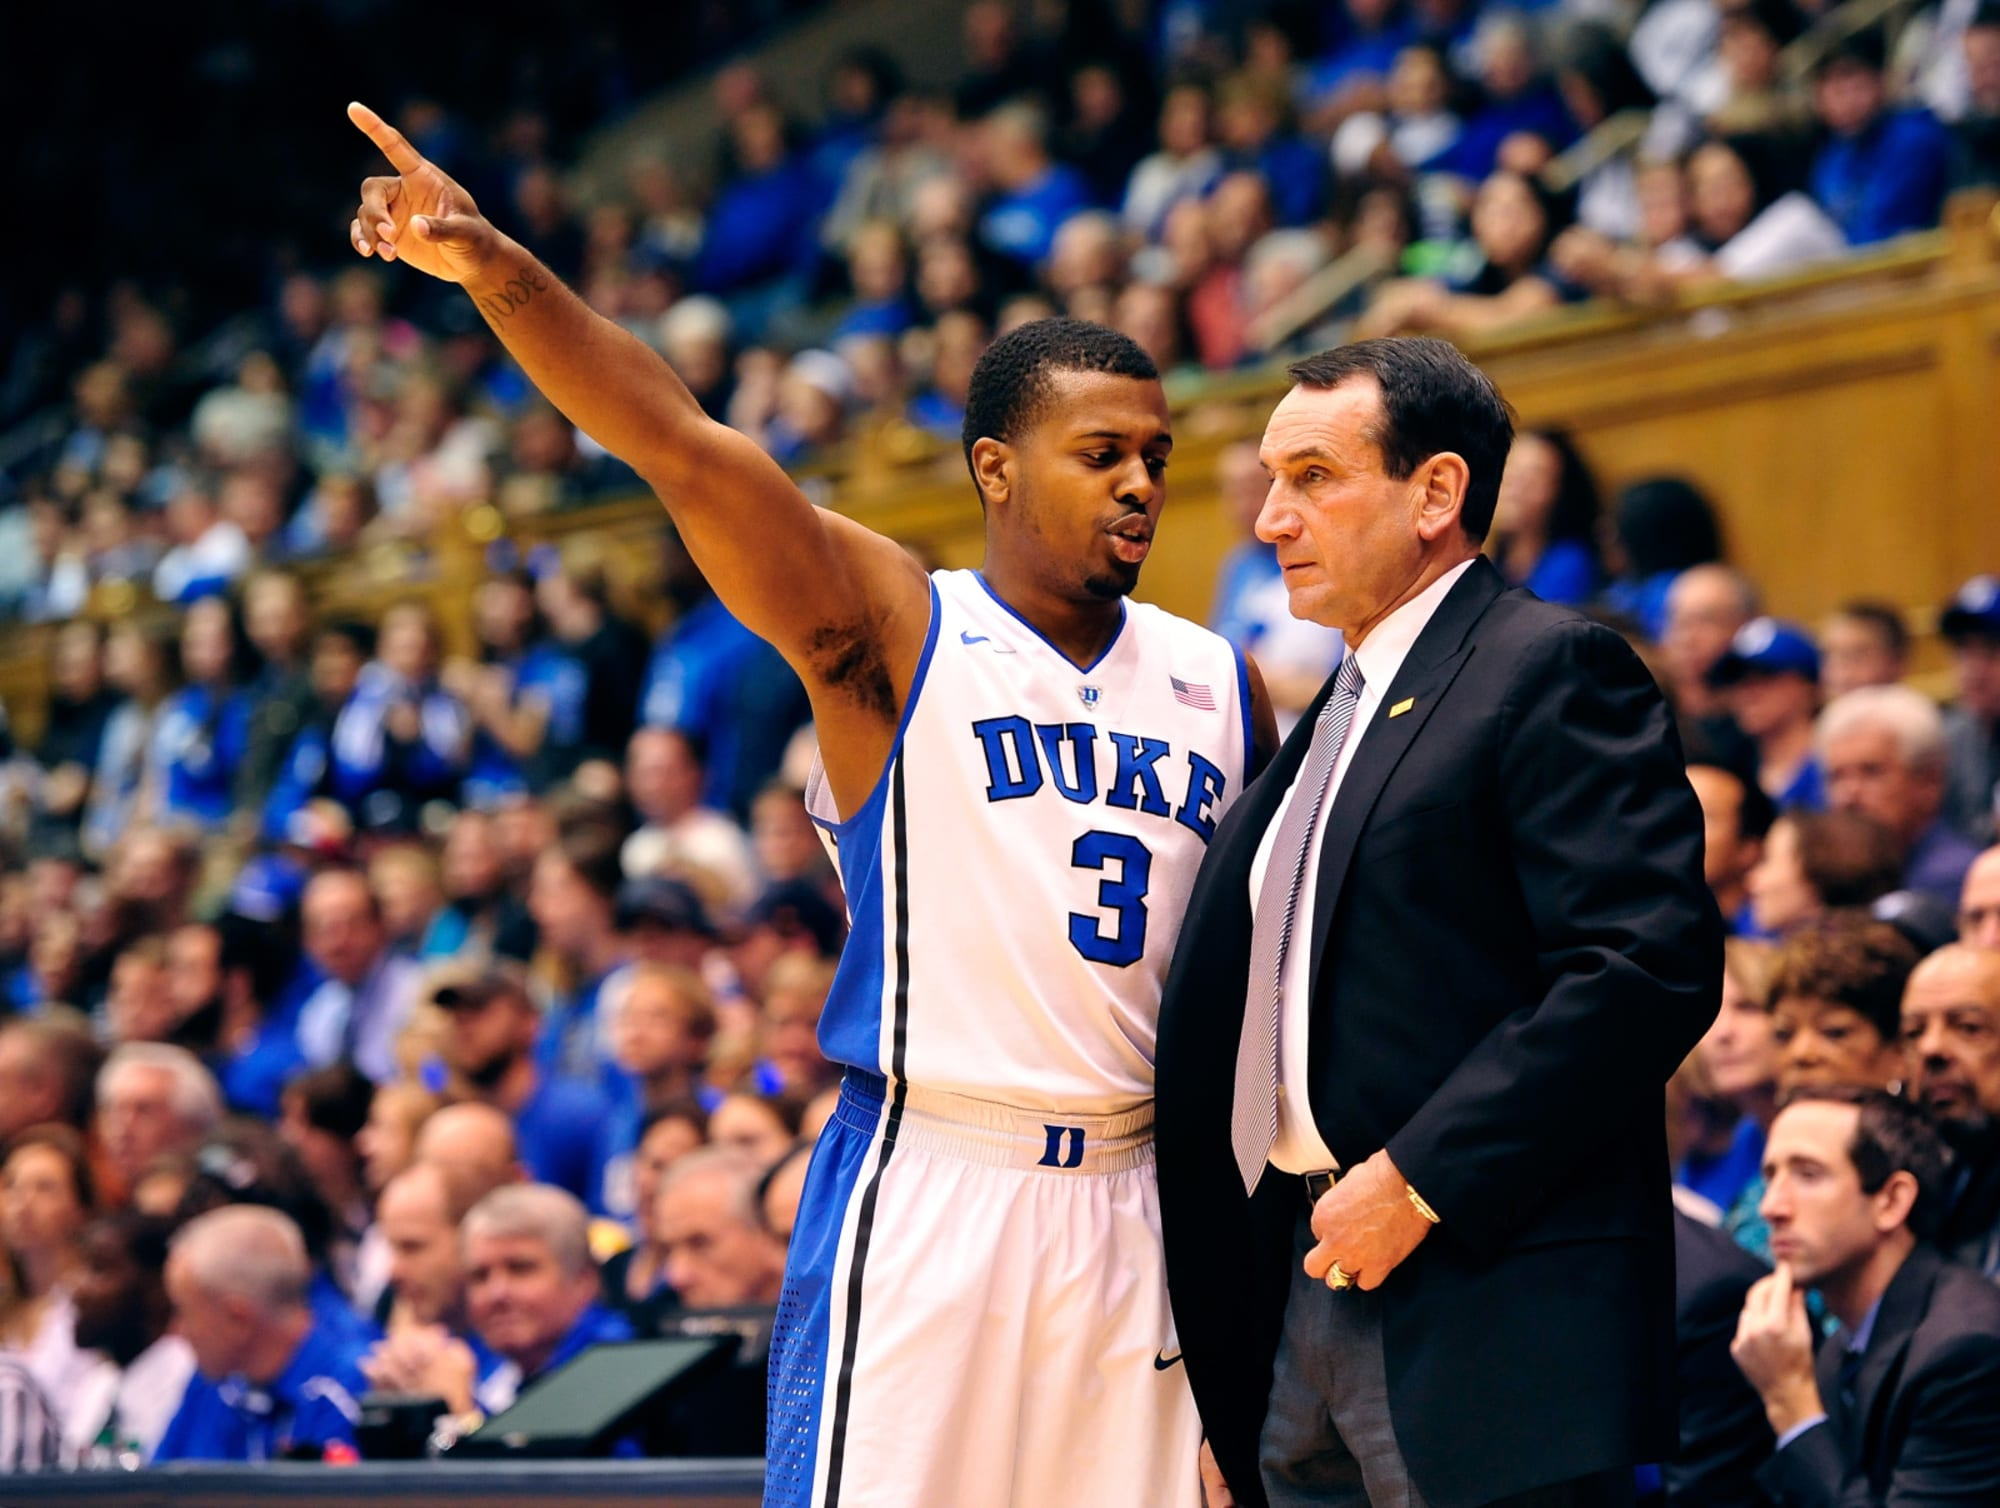 Duke basketball: Coach K's event to include two former Blue Devils